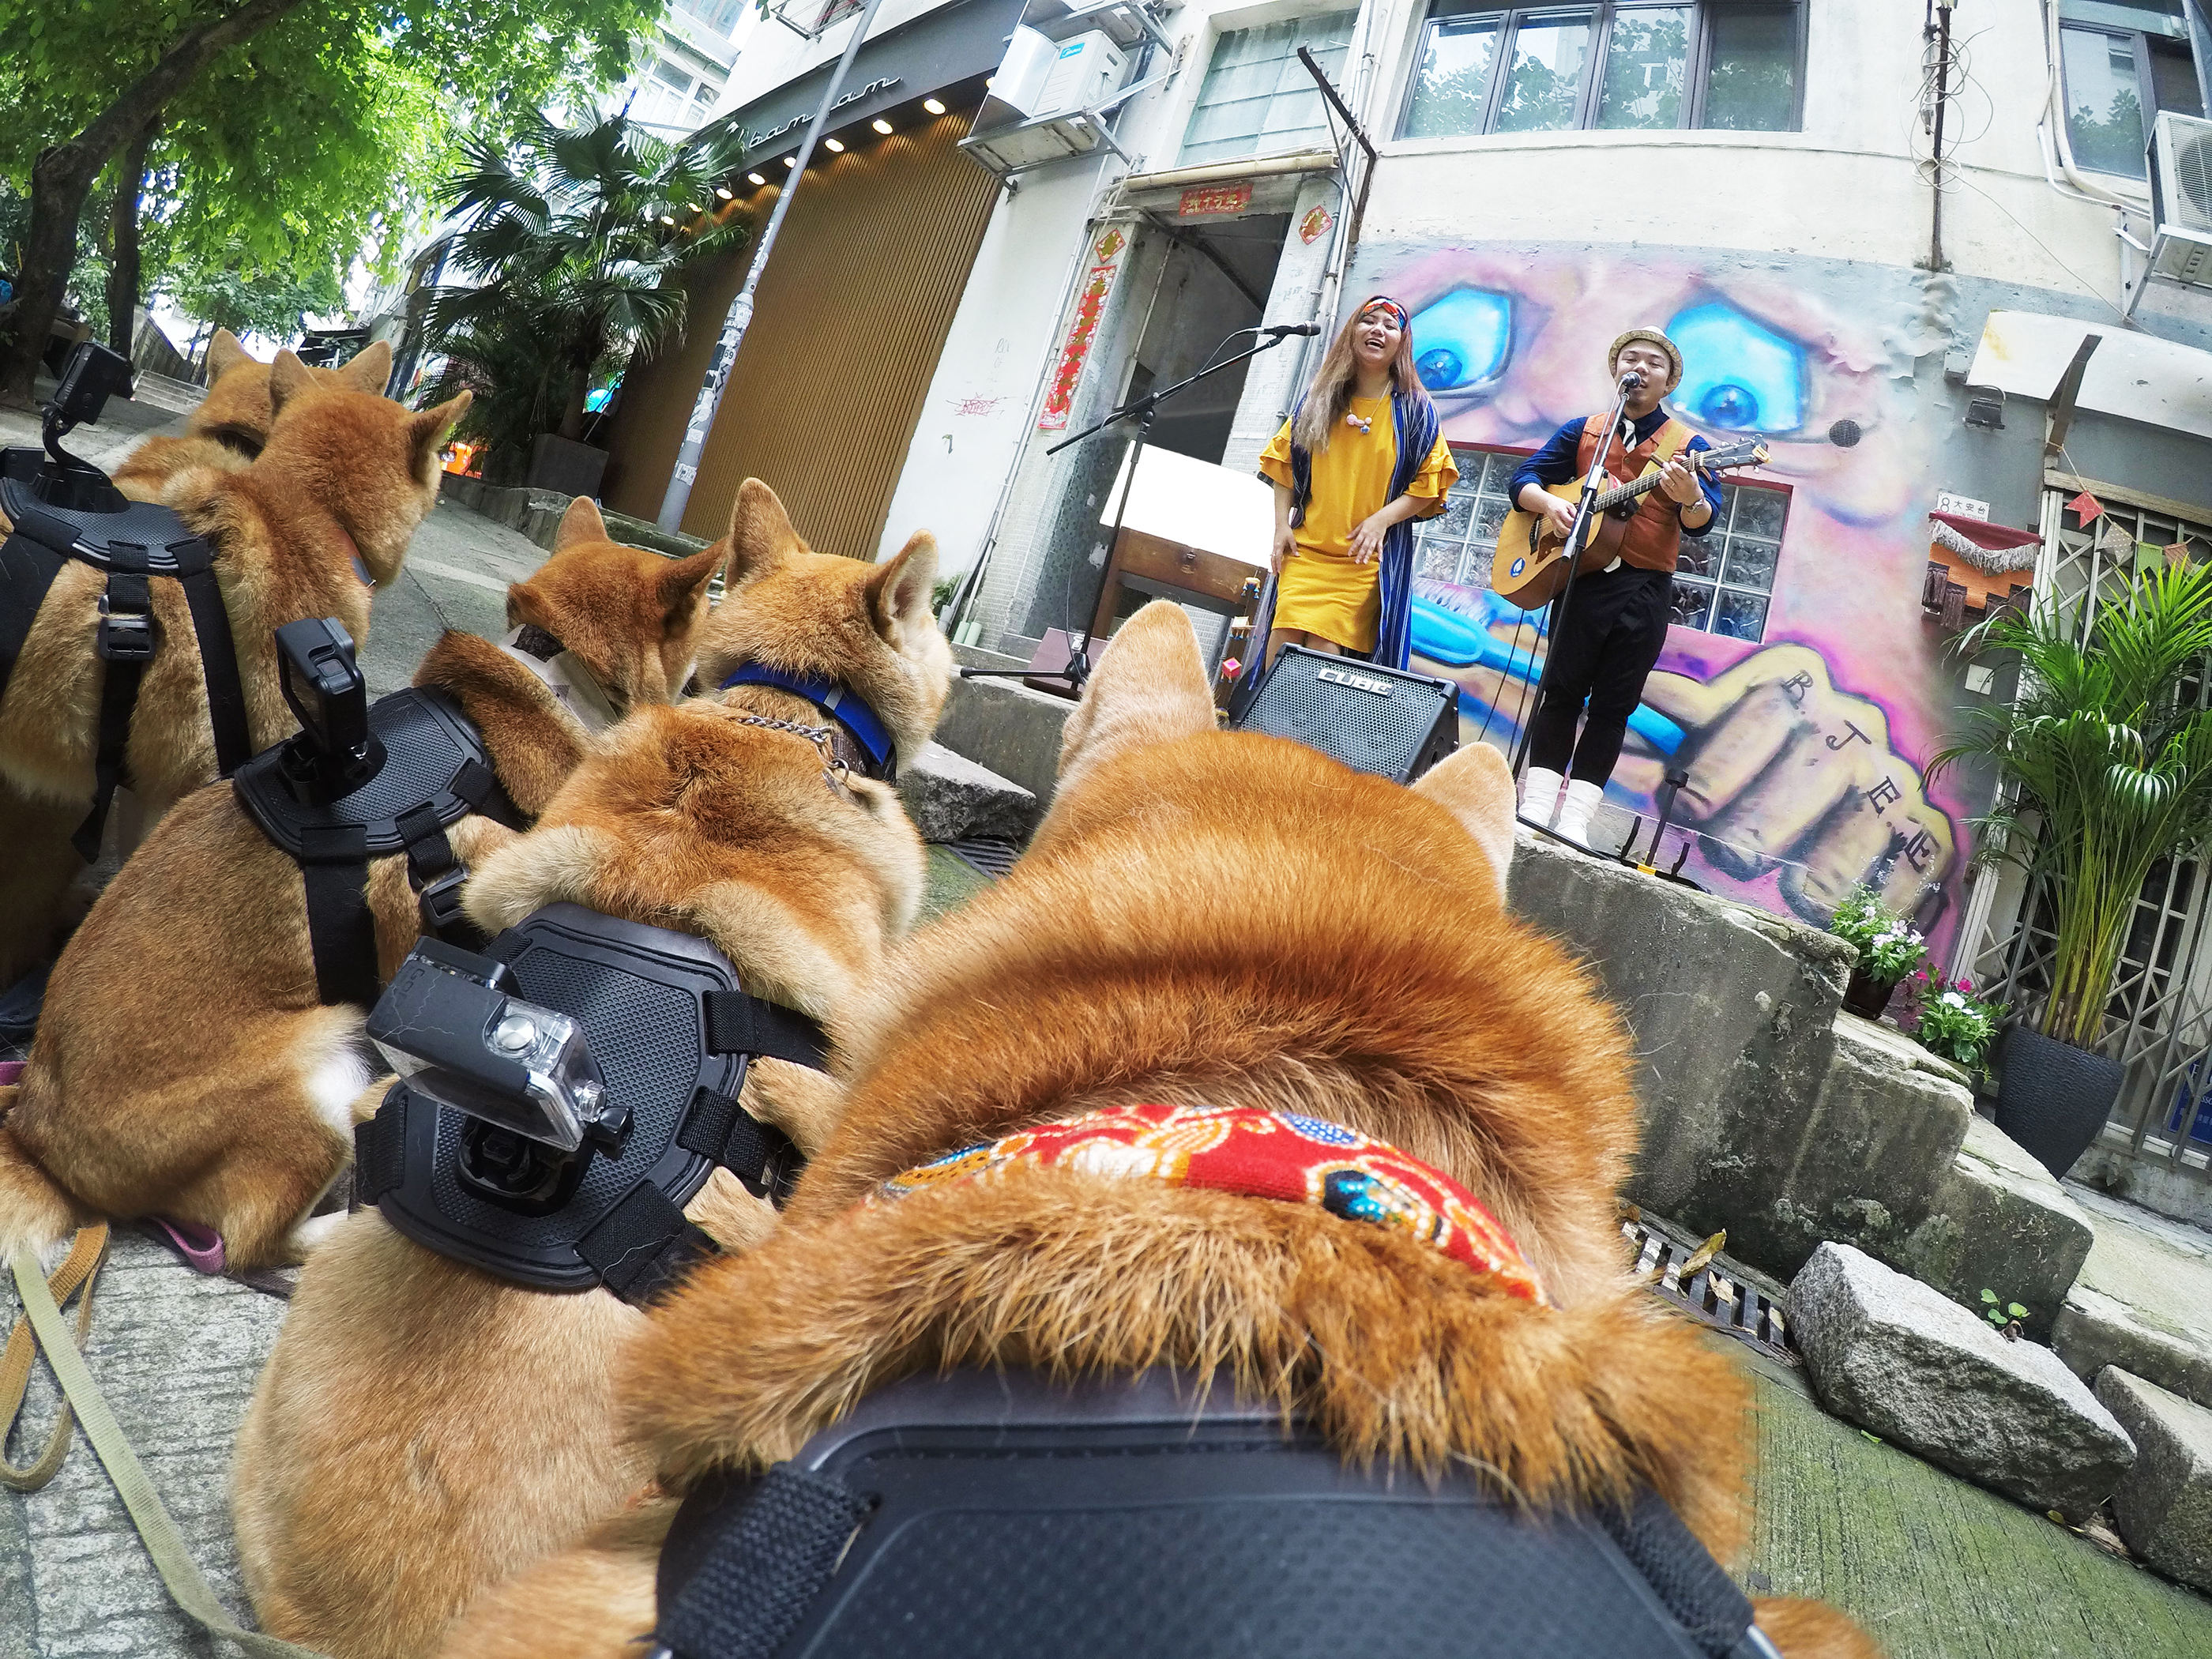 The back-mounted cameras were triggered by happy tail wagging.